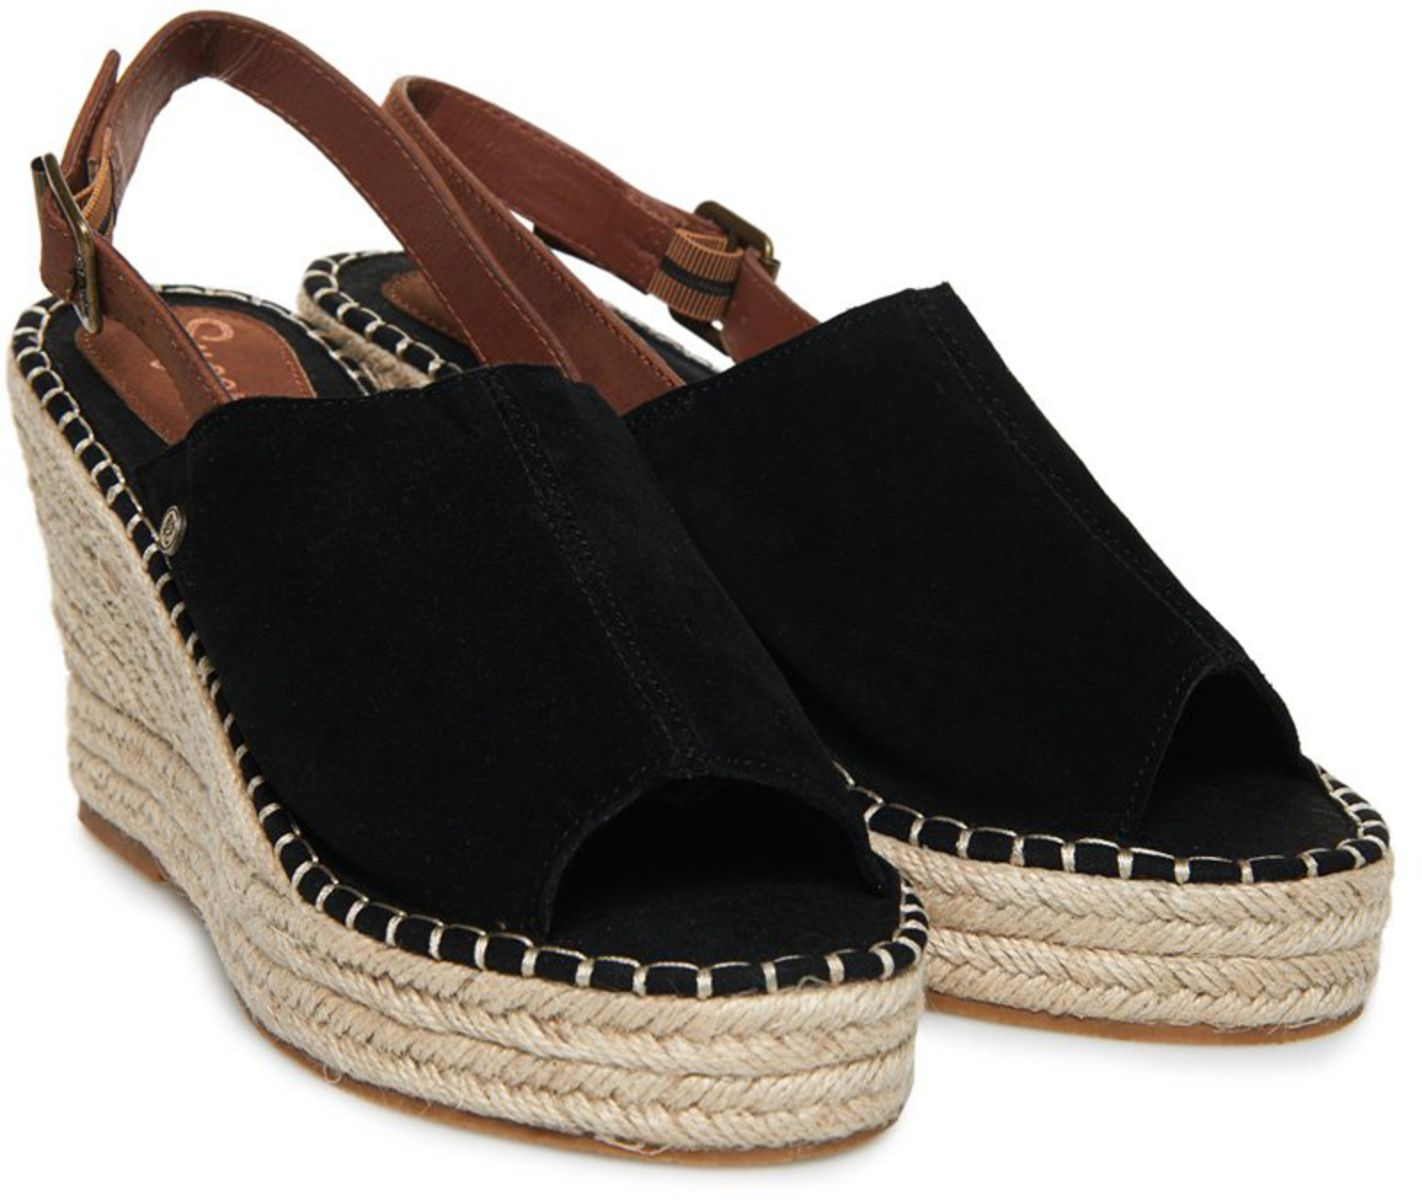 Superdry-Espadrilles-Assorted-Styles thumbnail 12